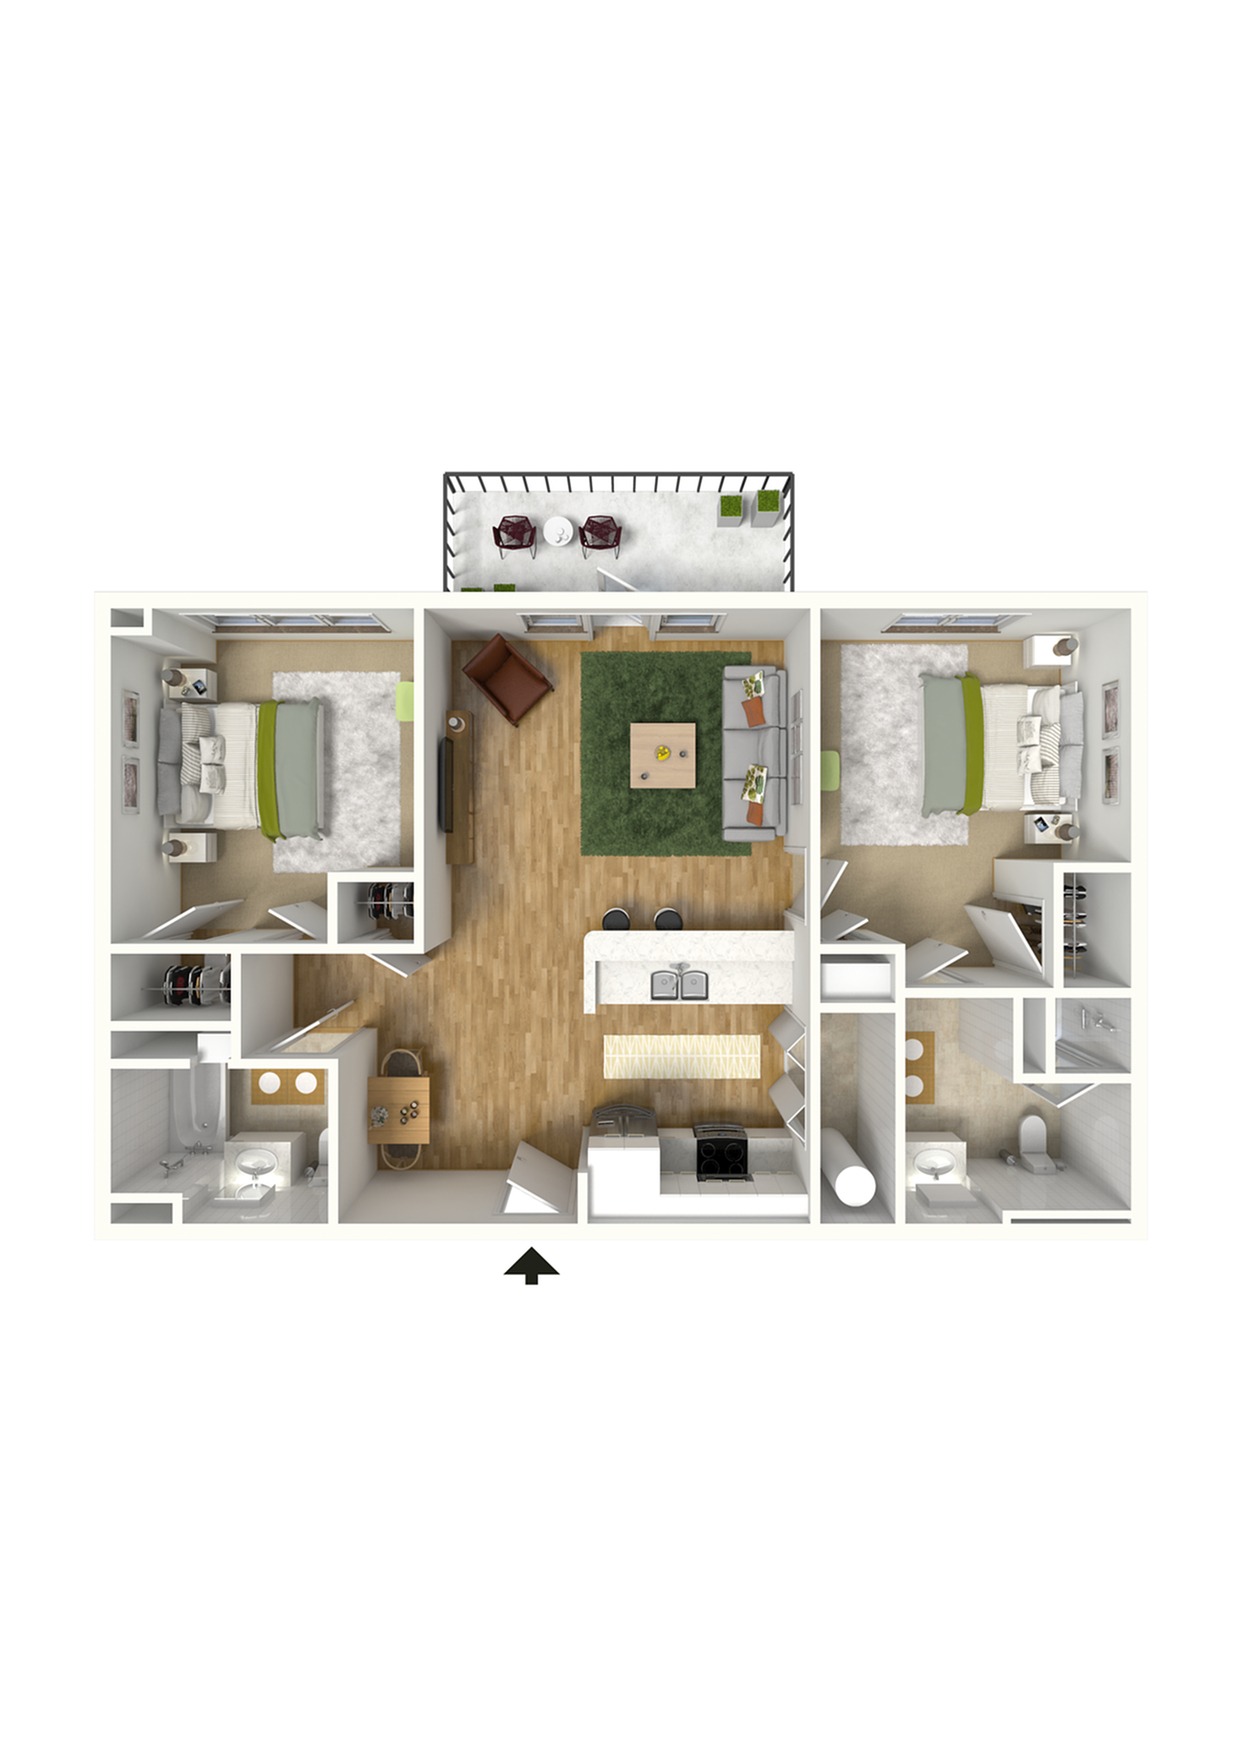 inspirational acadian plans unique best rouge in of home baton apartments design story bedroom house